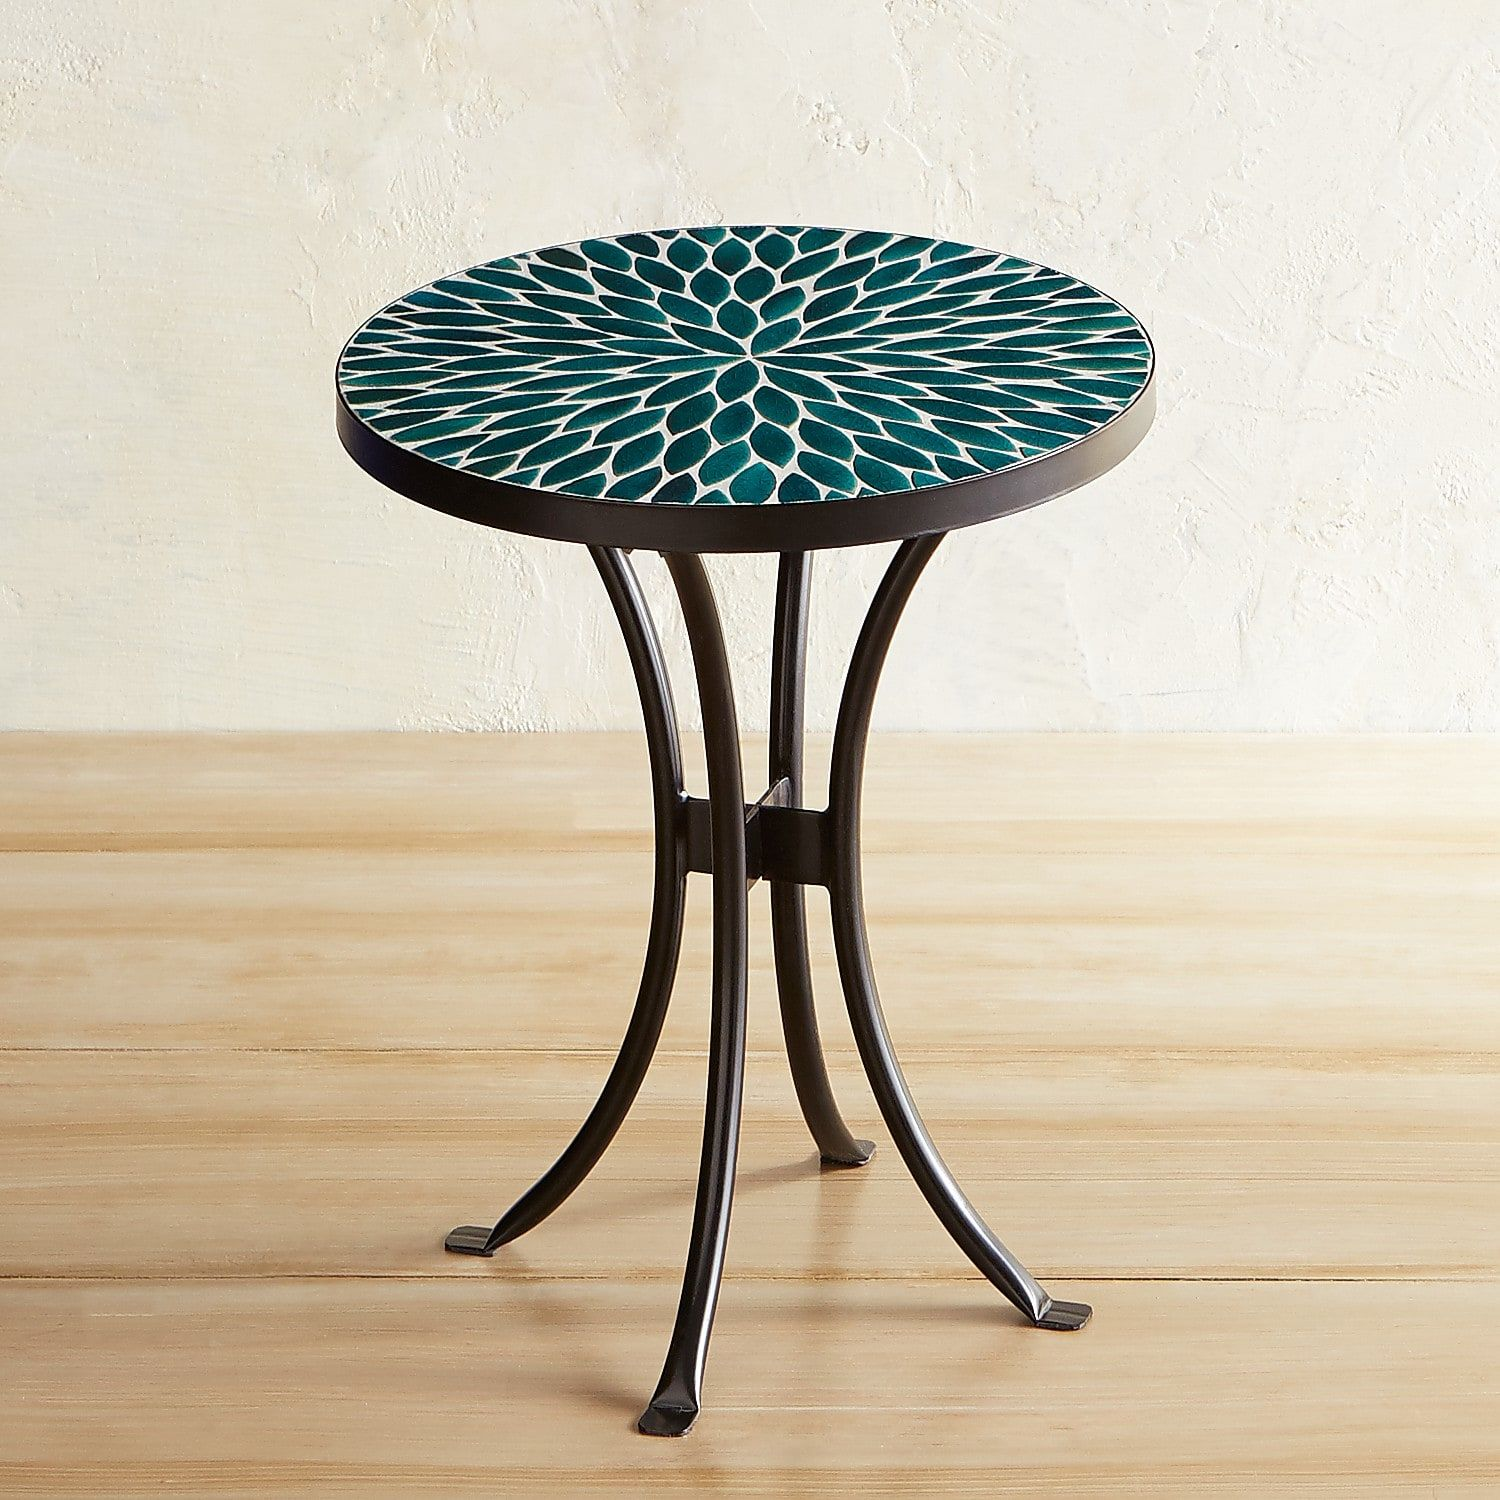 jules green pebbles mosaic accent table patio furniture coffee small modern wood dining mats cool light fixtures dale tiffany lamp black mirrored nightstand bedside wall mounted